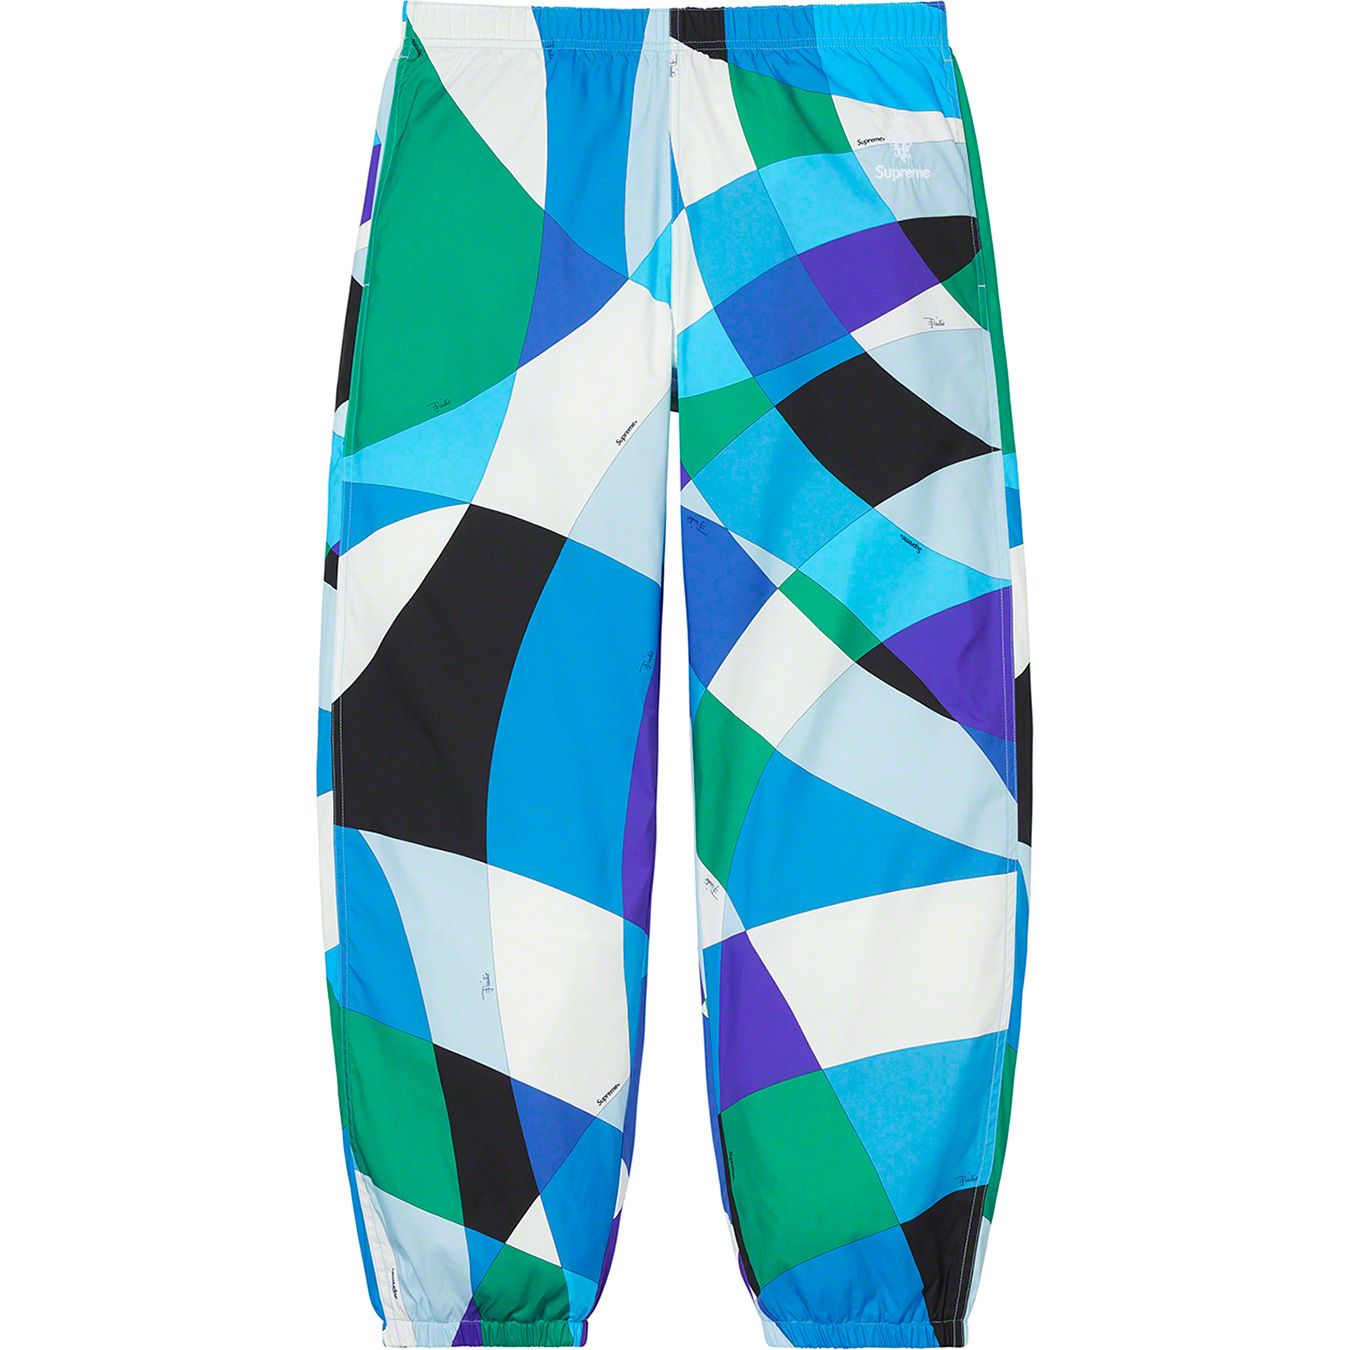 supreme-emilio-pucci-21ss-collaboration-release-20210612-week16-sport-pant